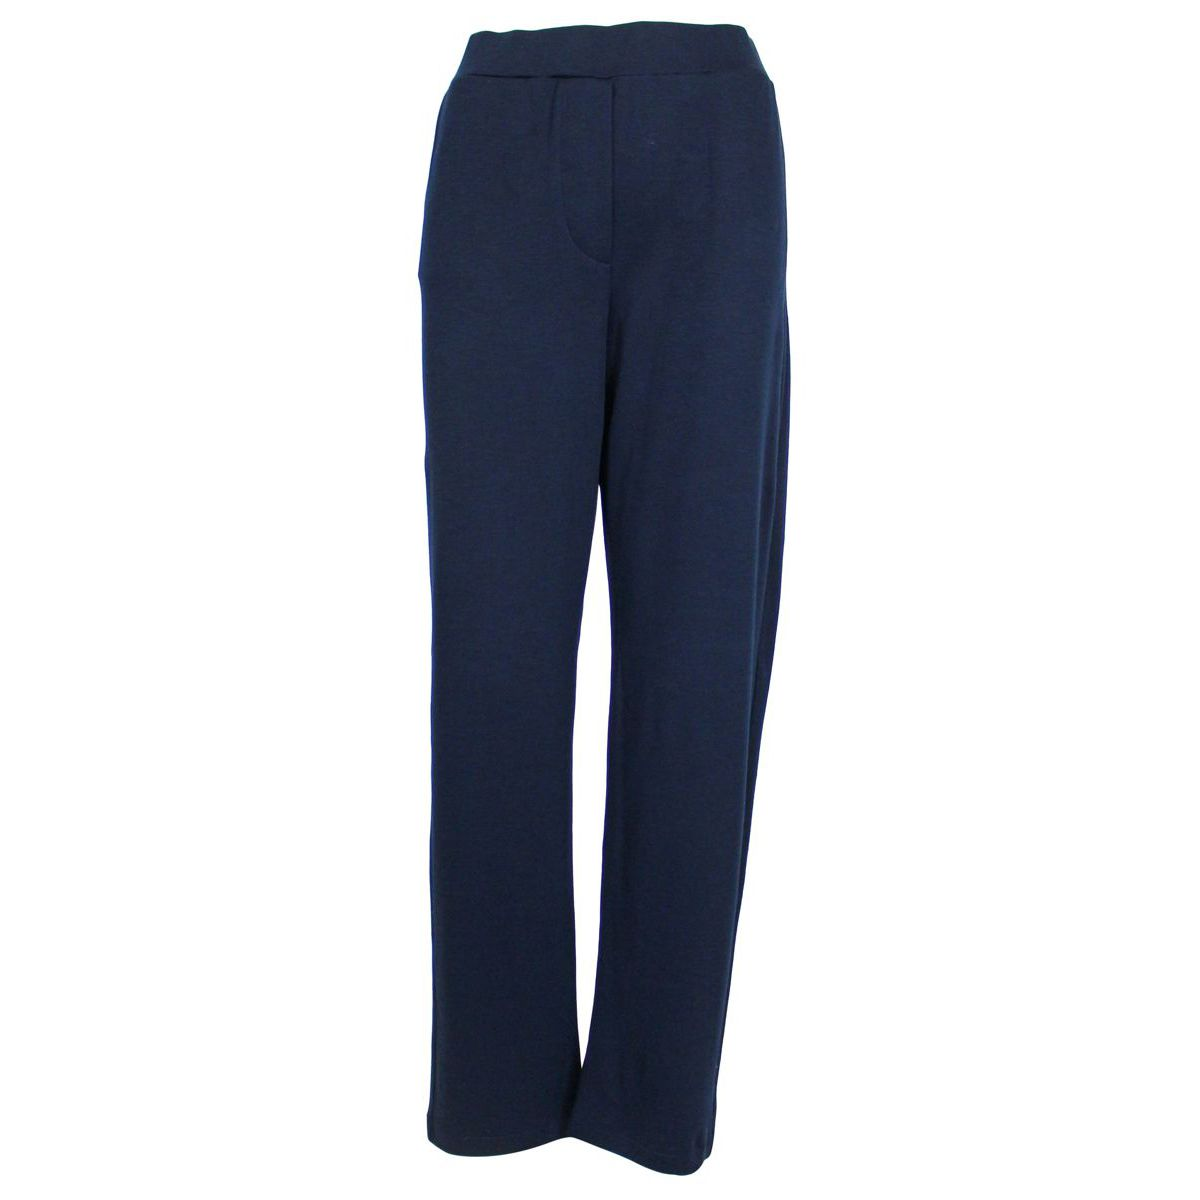 Jojjing style trousers with elastic Navy GRAN SASSO